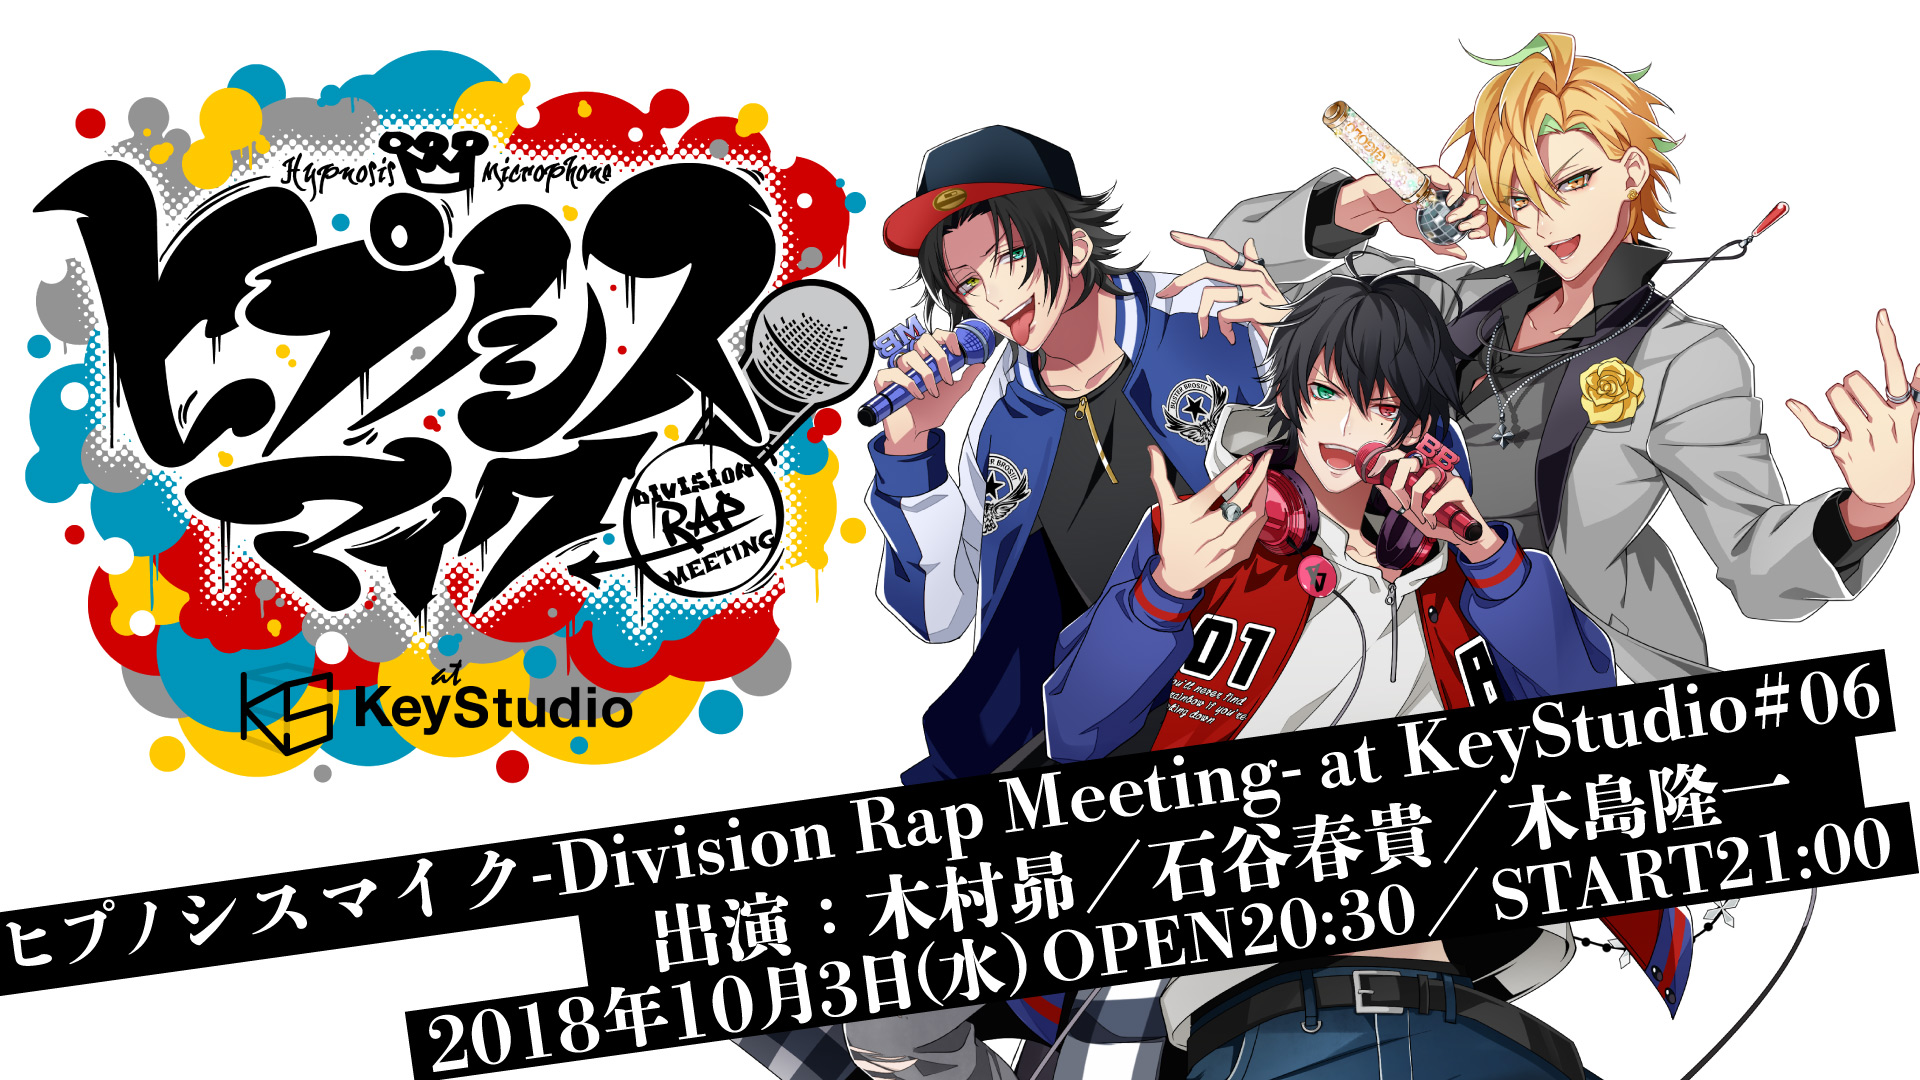 ヒプノシスマイク -Division Rap Meeting- at KeyStudio #06